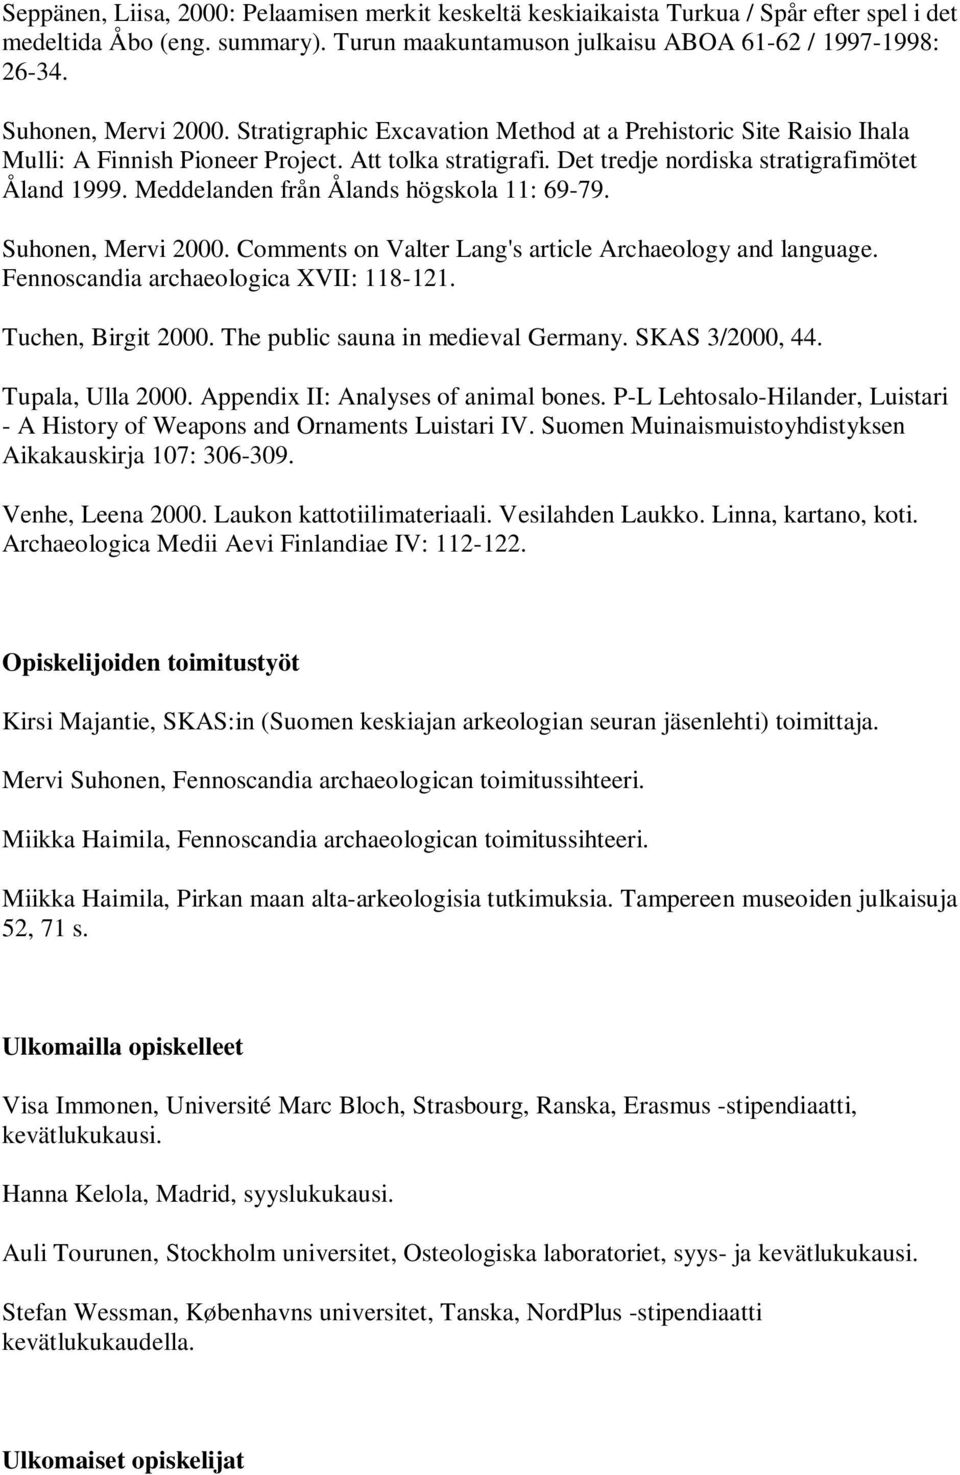 Meddelanden från Ålands högskola 11: 69-79. Suhonen, Mervi 2000. Comments on Valter Lang's article Archaeology and language. Fennoscandia archaeologica XVII: 118-121. Tuchen, Birgit 2000.